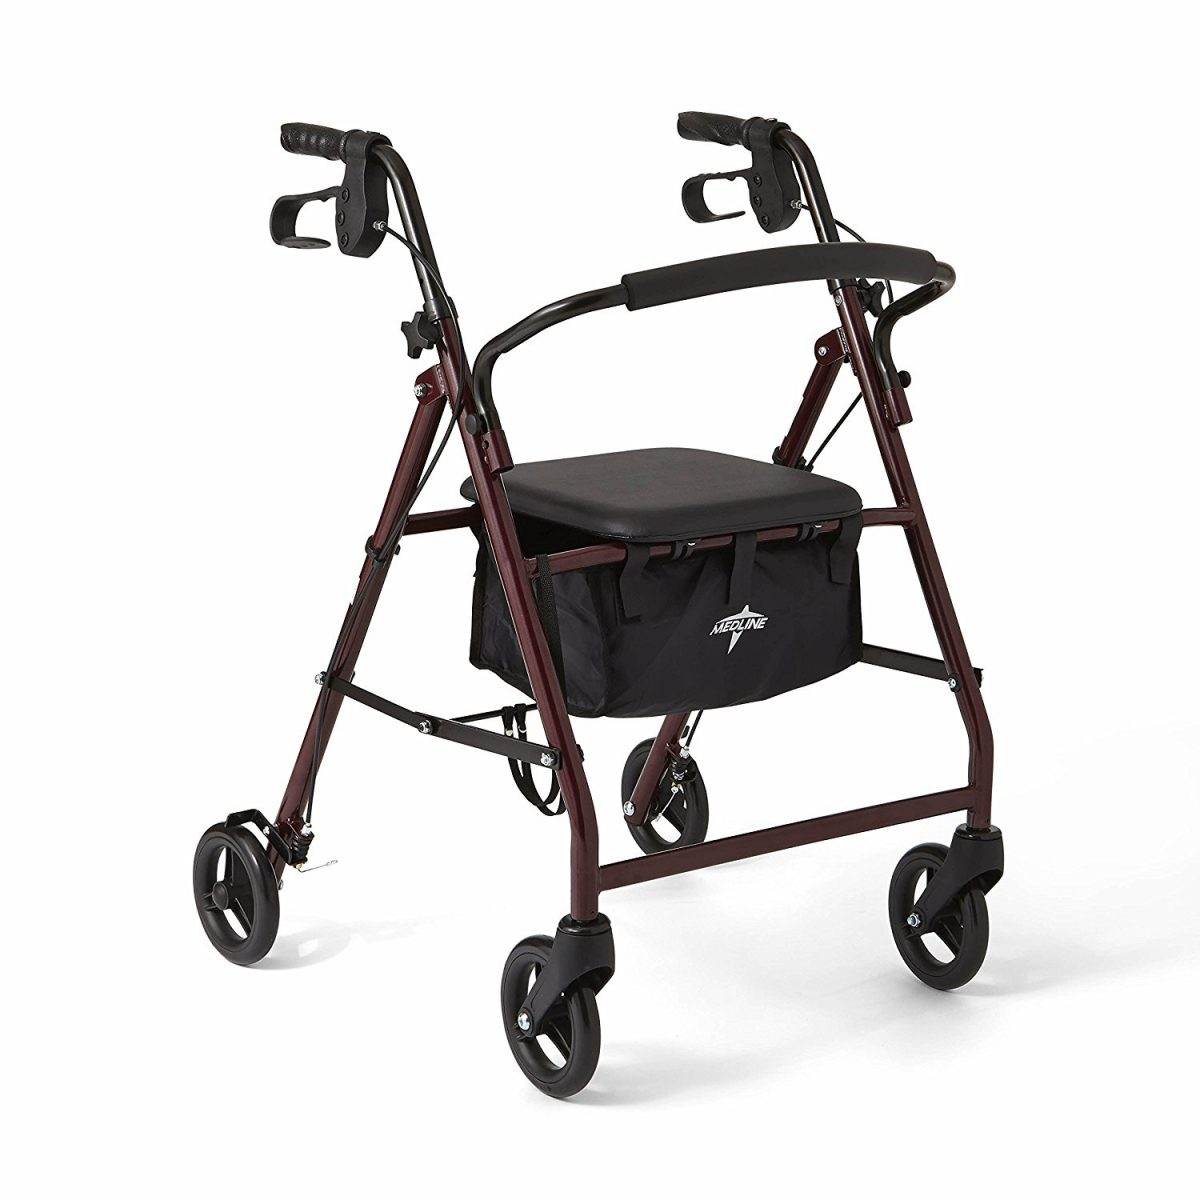 Steel-made and Foldable Rollator Walker – The Ideal Walking Aid